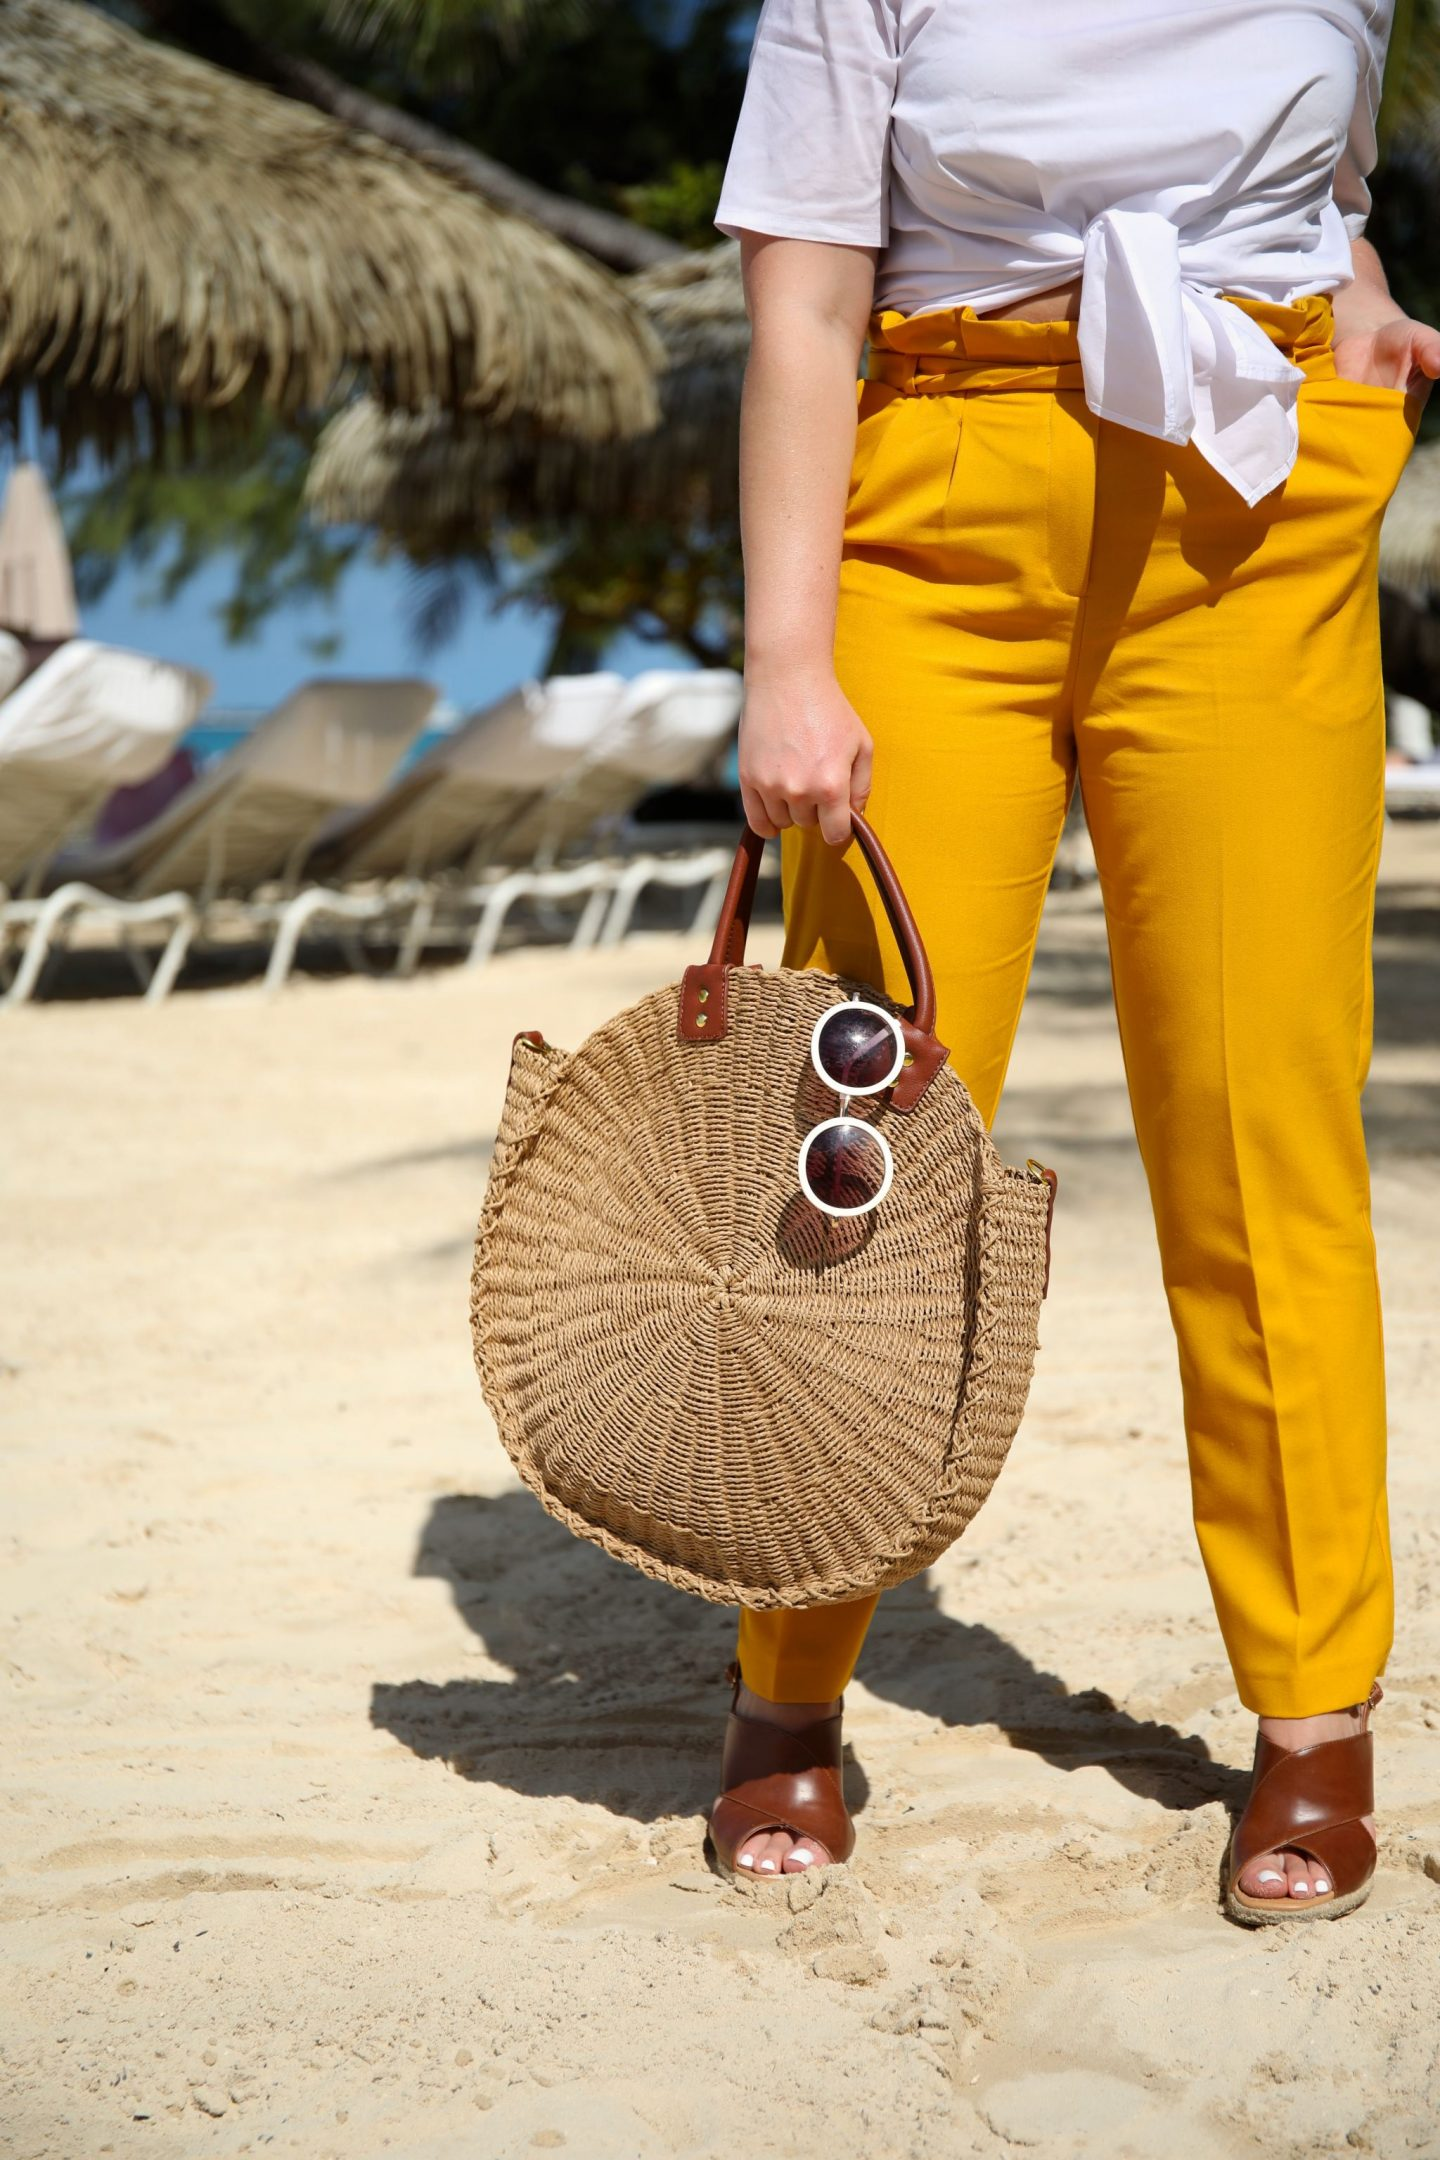 Katie Heath, KALANCHOE, Straw Bags To Suit All Budgets, The Cayman Islands, Caribbean